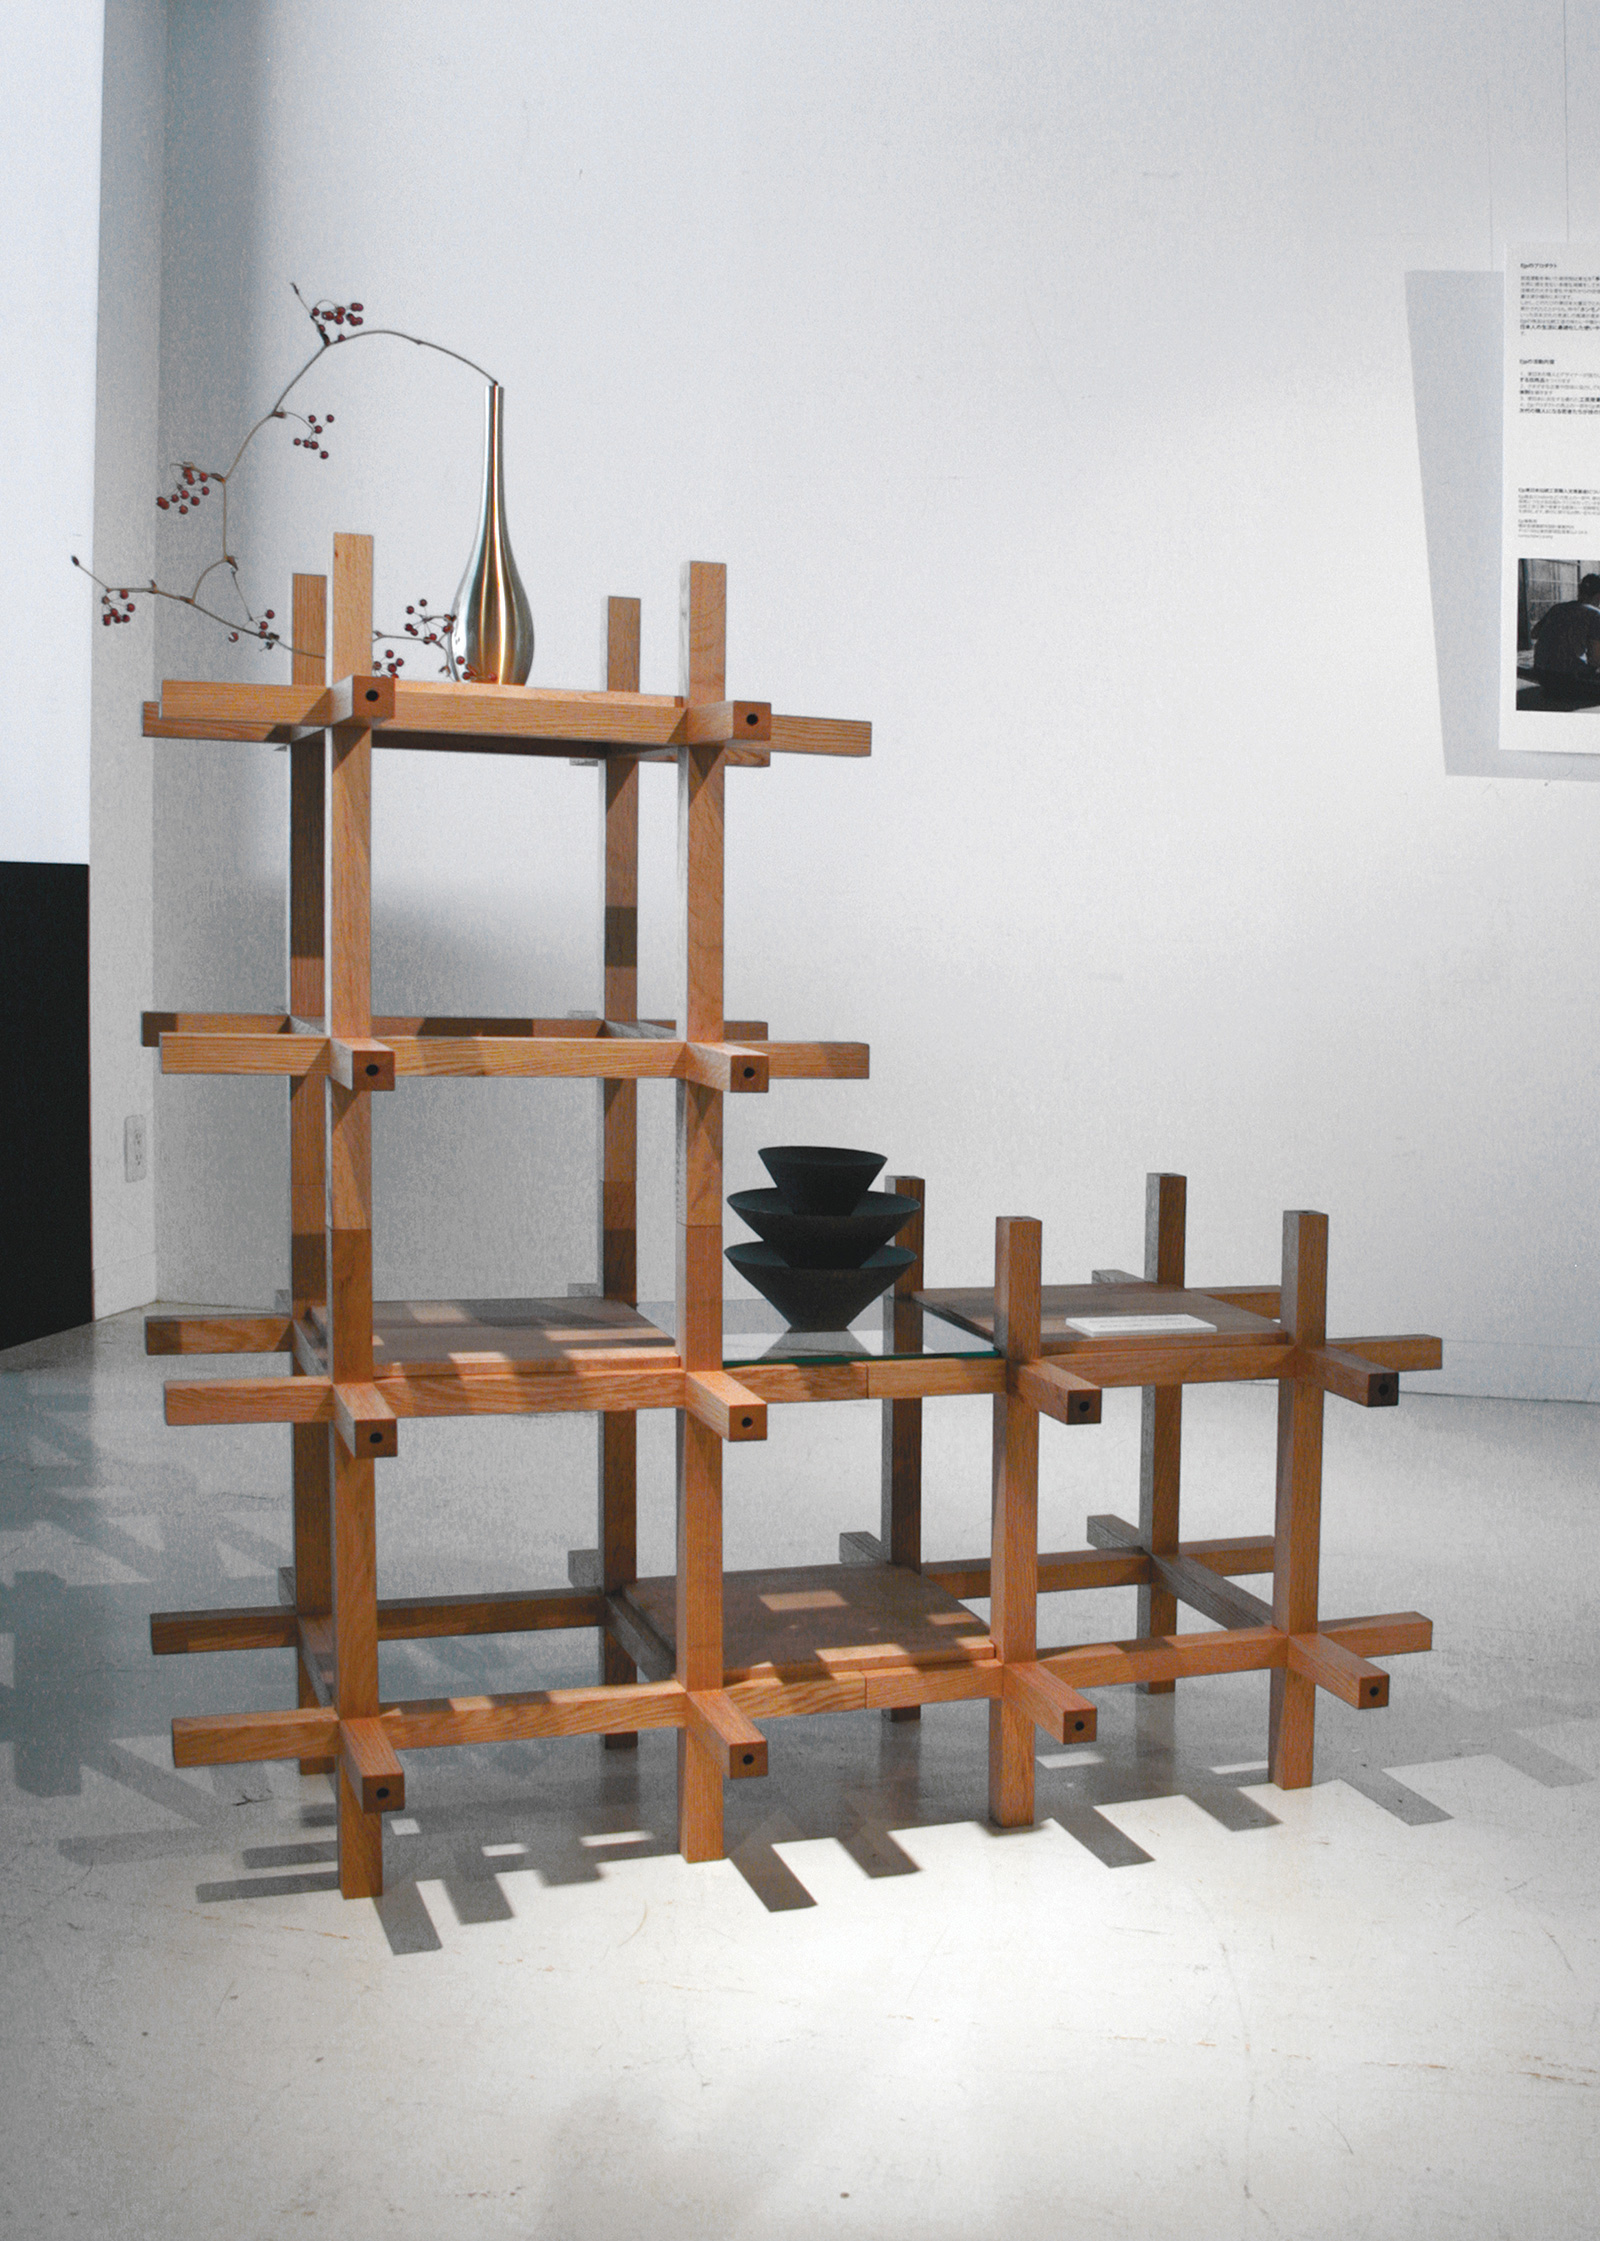 Chidori Shelf| Chidori furniture | Kengo Kuma and Associates | STIR